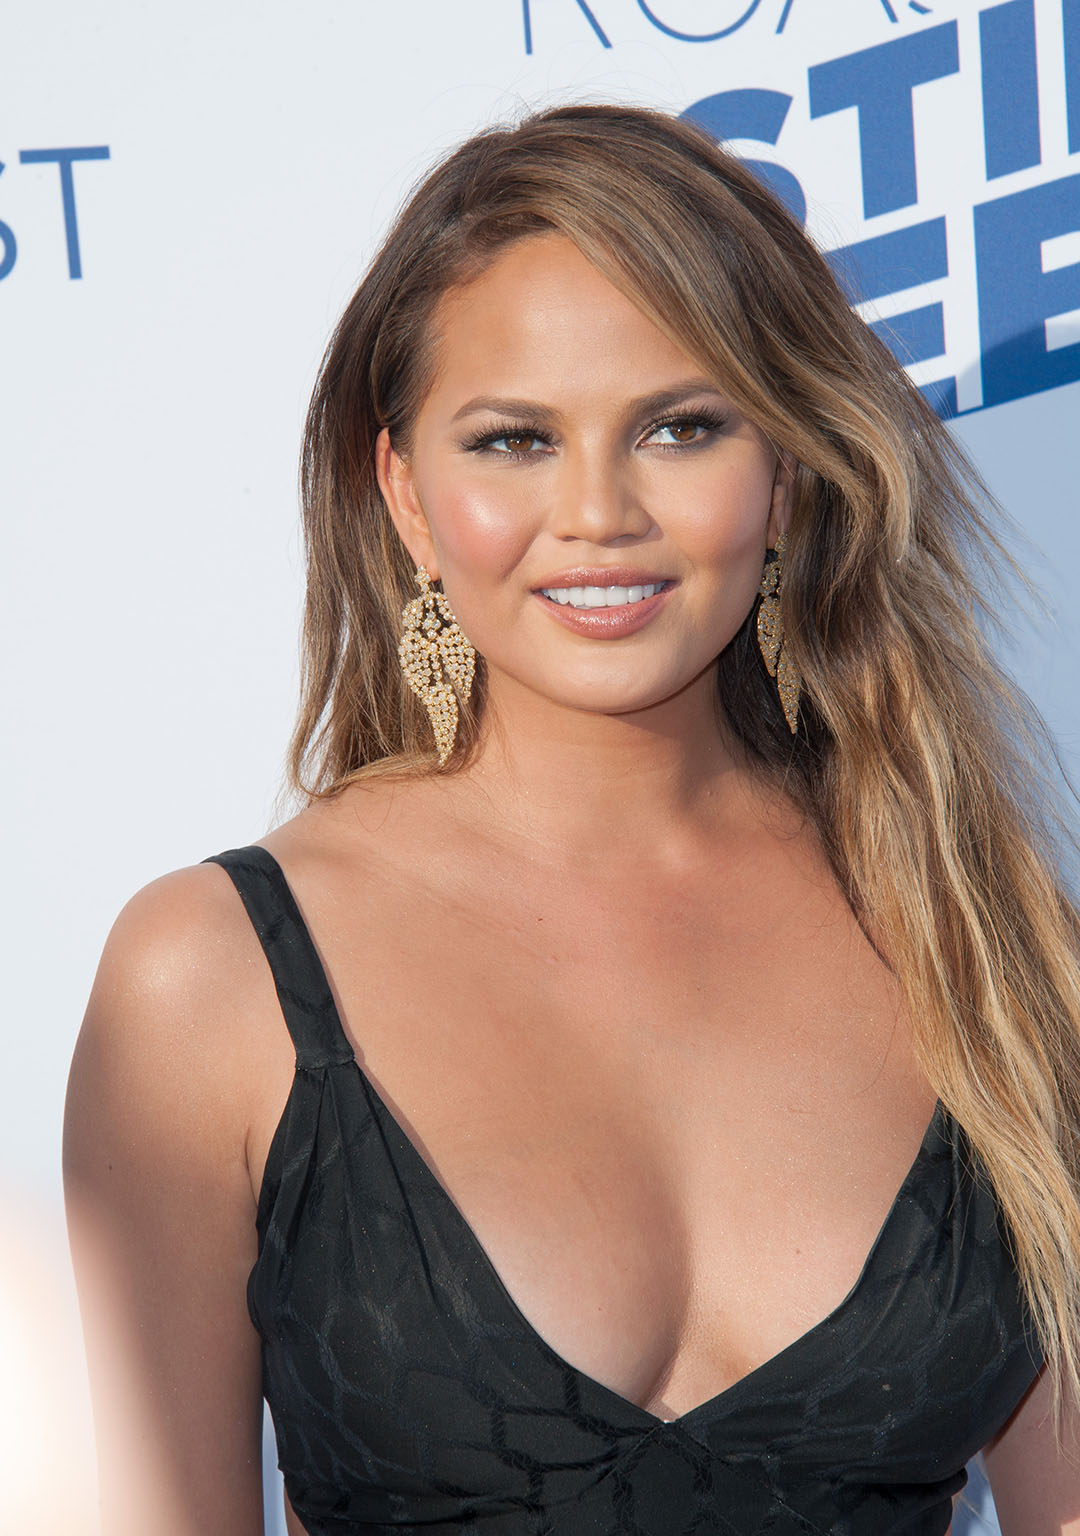 Chrissy Teigen Hilariously Shares All the 'Dumb Questions' She Asked at Luna's Preschool Orientation